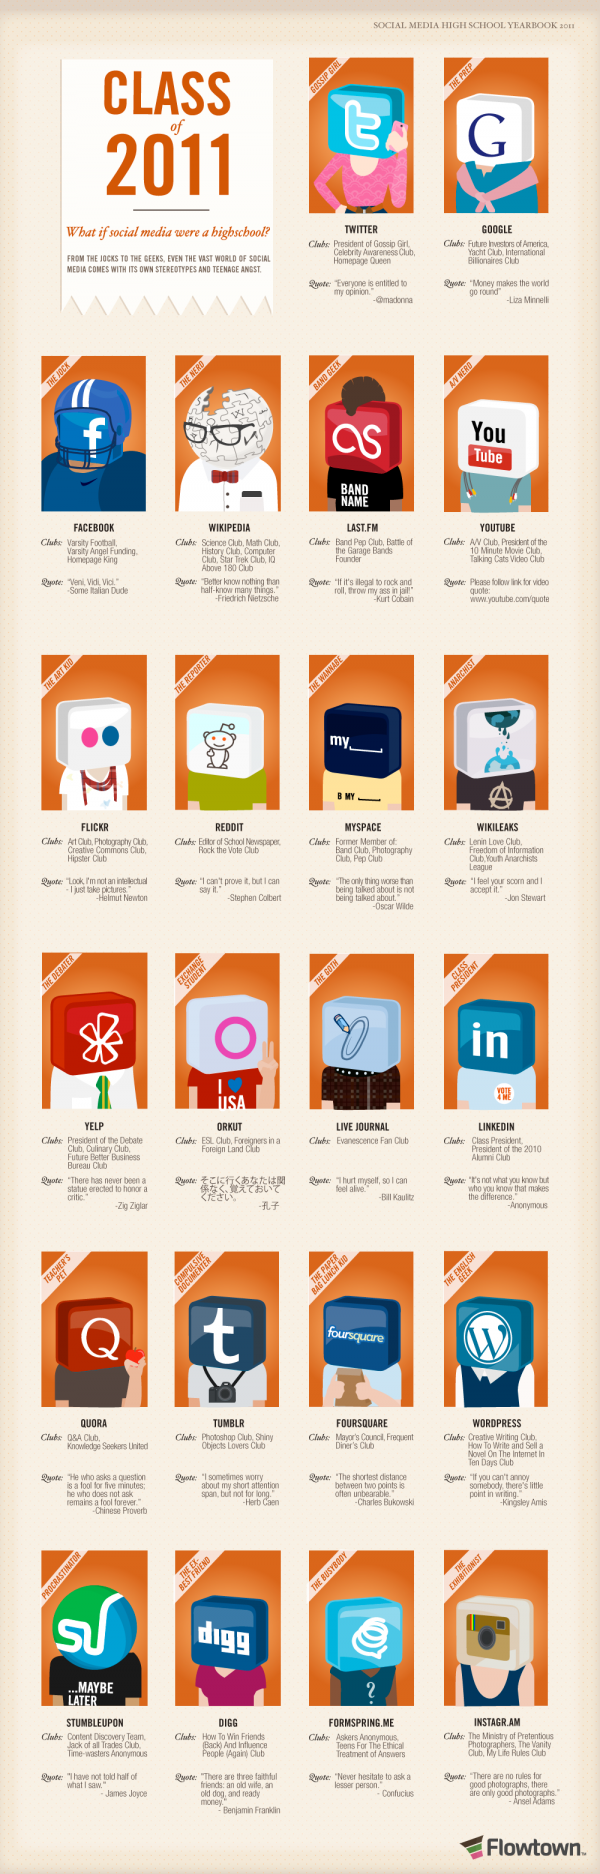 Social media in annuario - infographic